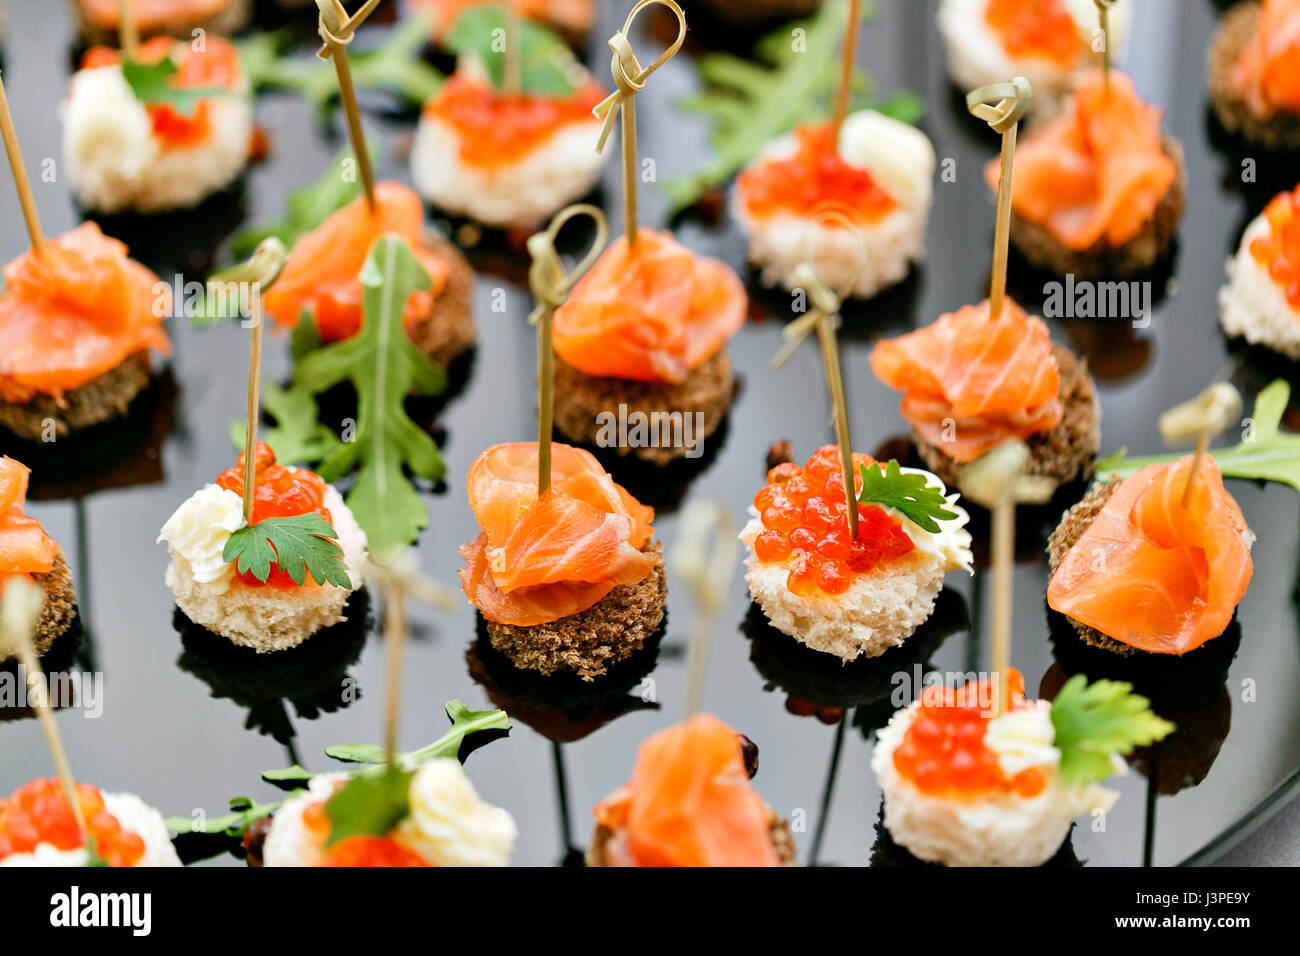 Le buffet à la réception. Assortiment de canapés. Service de banquets. table de la nourriture, des Photo Stock